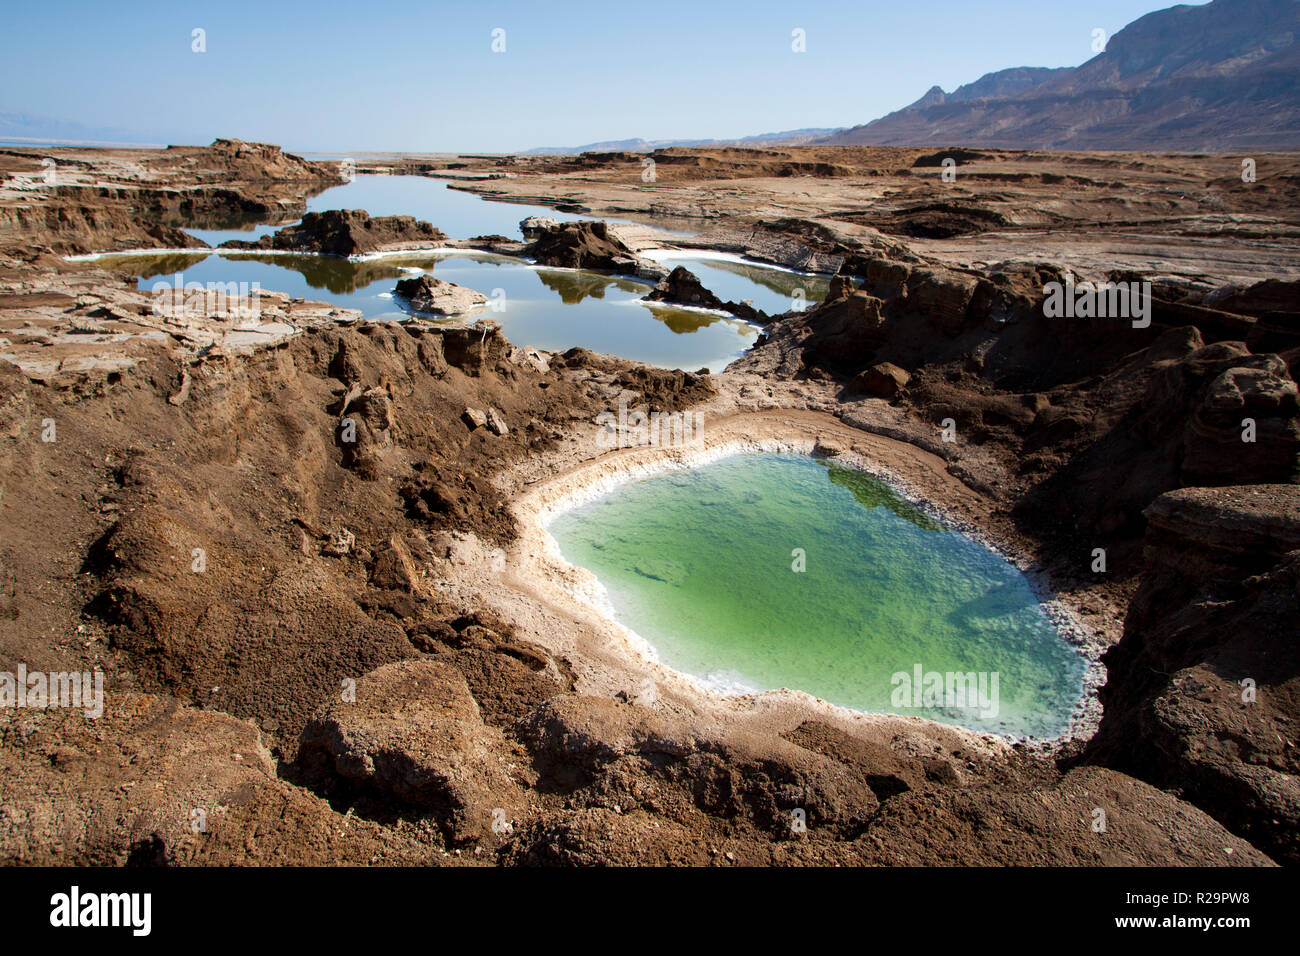 Sinkholes near the Dead Sea, formed when underground salt is dissolved by freshwater intrusion, due to continuing sea-level drop. - Stock Image